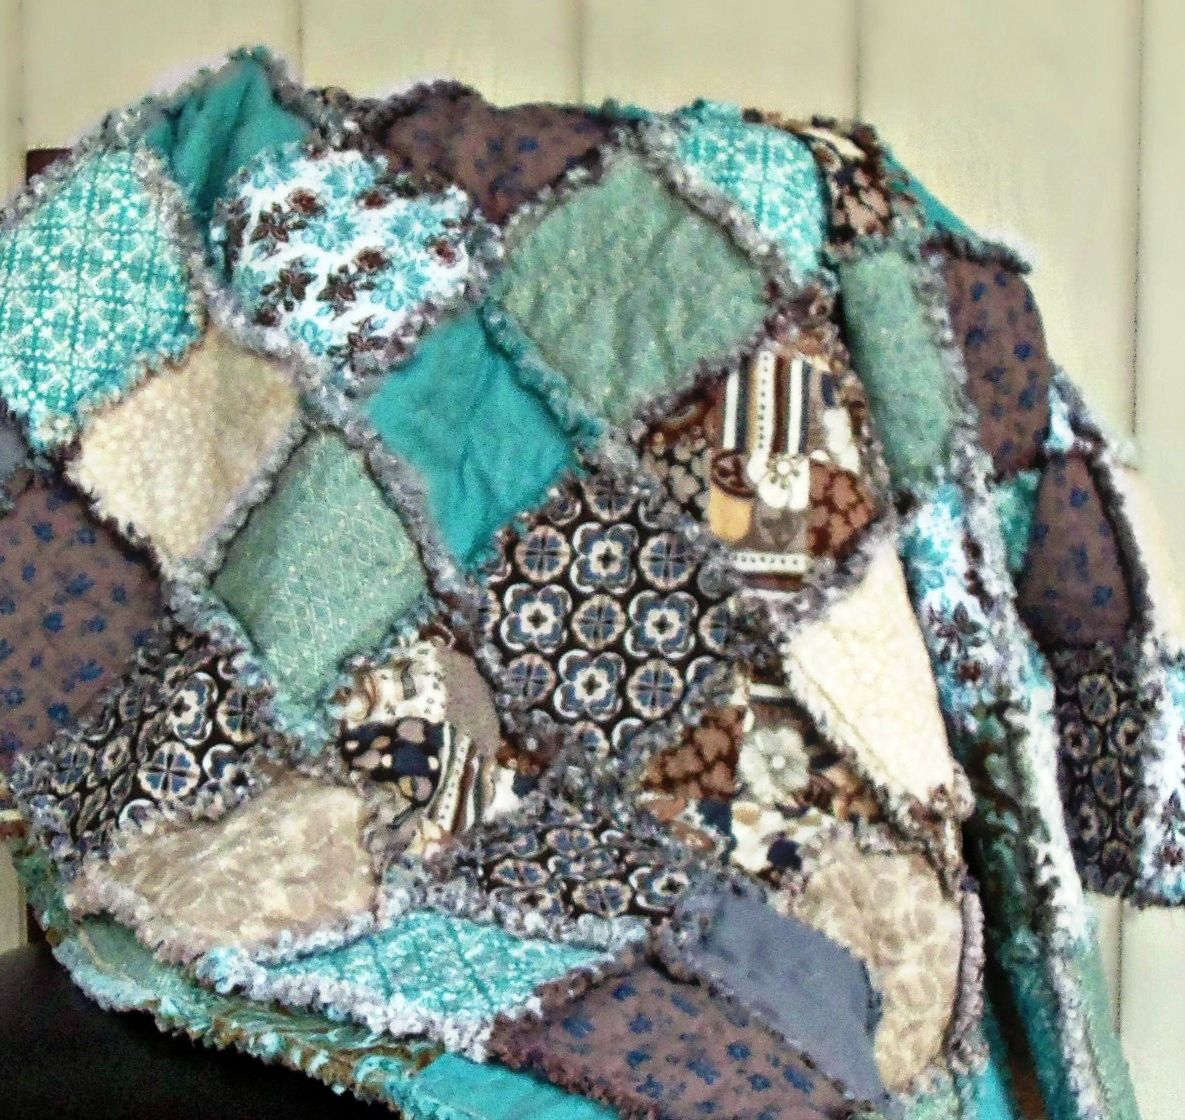 Taupe - Teal - Tan - Brown - Grey Rag Quilt. Modern Rag Quilts by ...